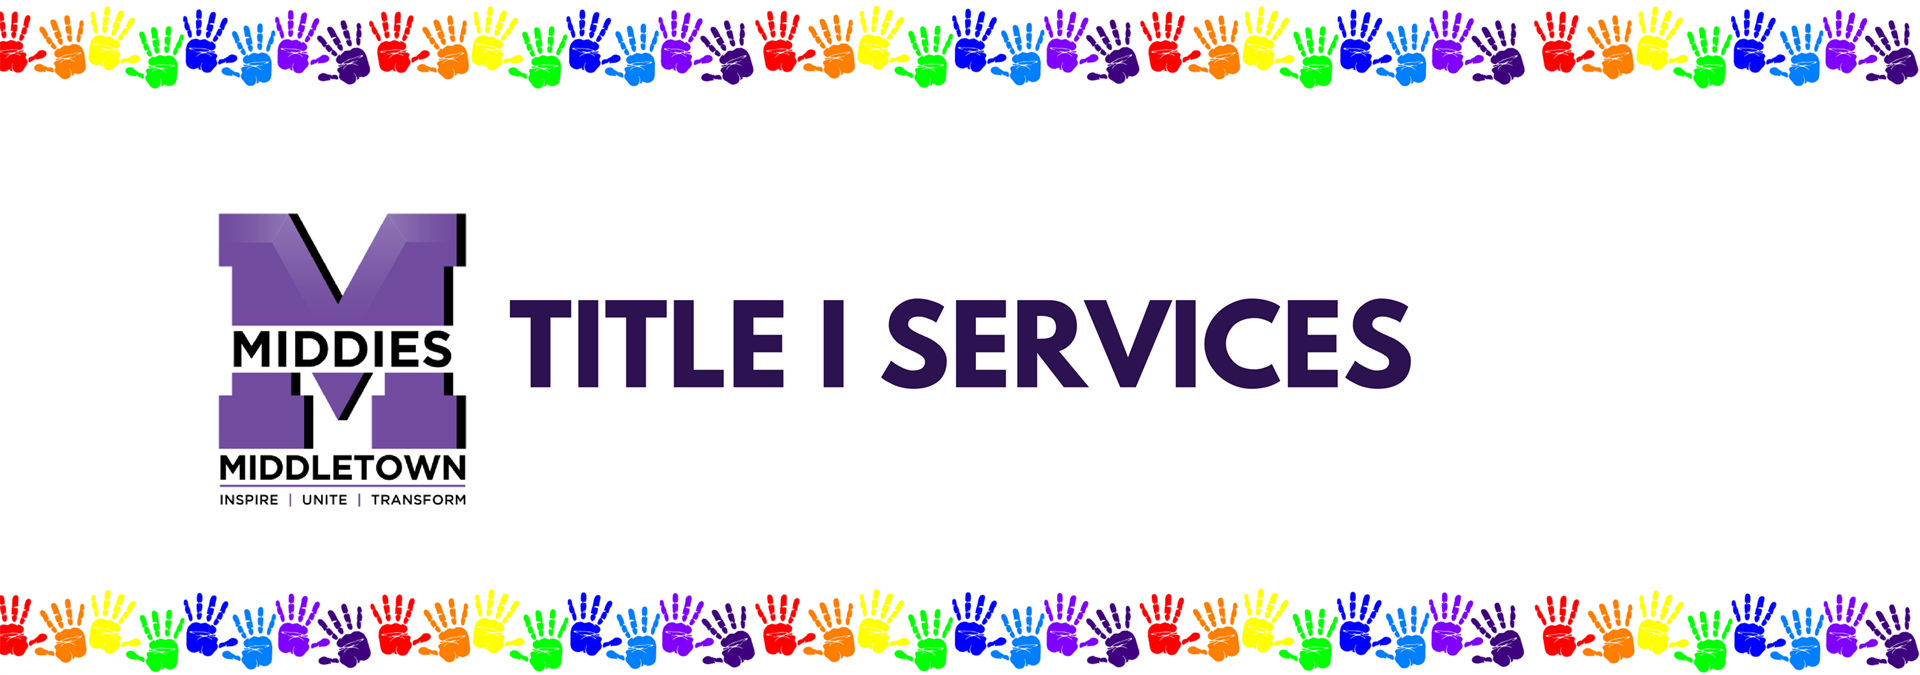 Title I Services Graphic